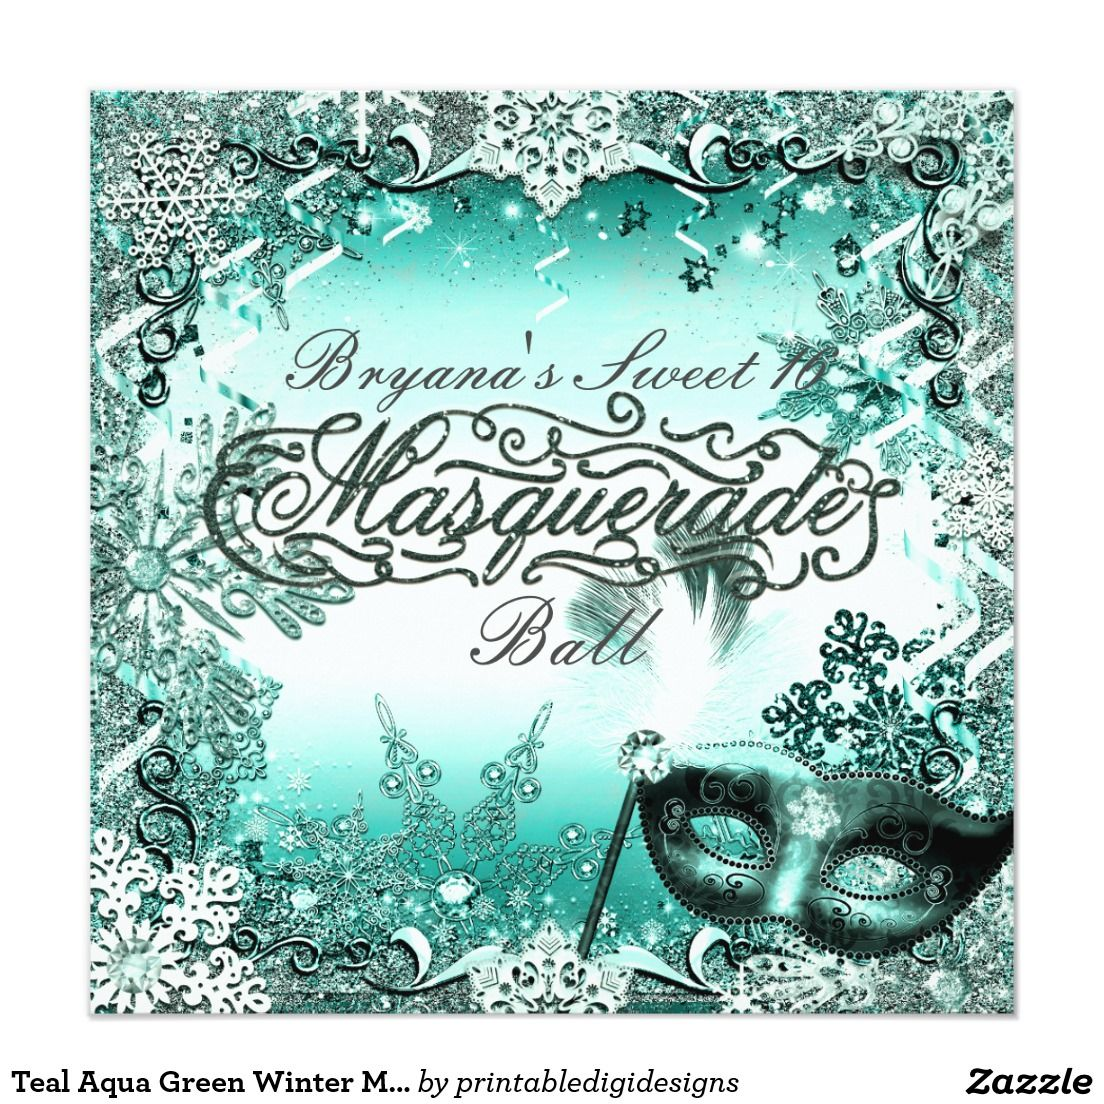 febca153d7dc Teal Aqua Green Winter Masquerade & Snowflakes Invitation | Zazzle ...